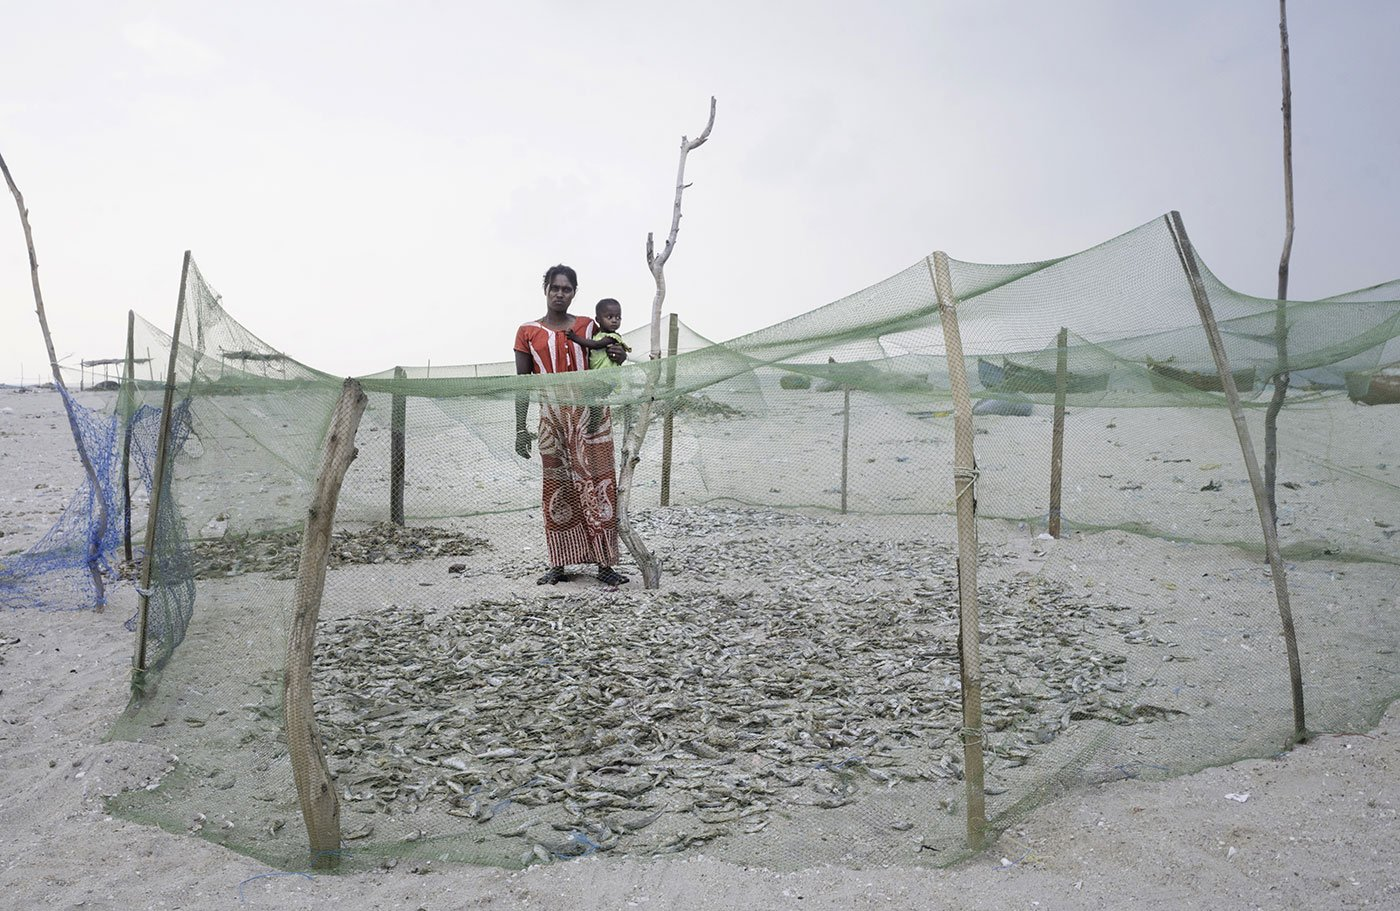 Woman with baby standing behind fishing nets used for drying fish